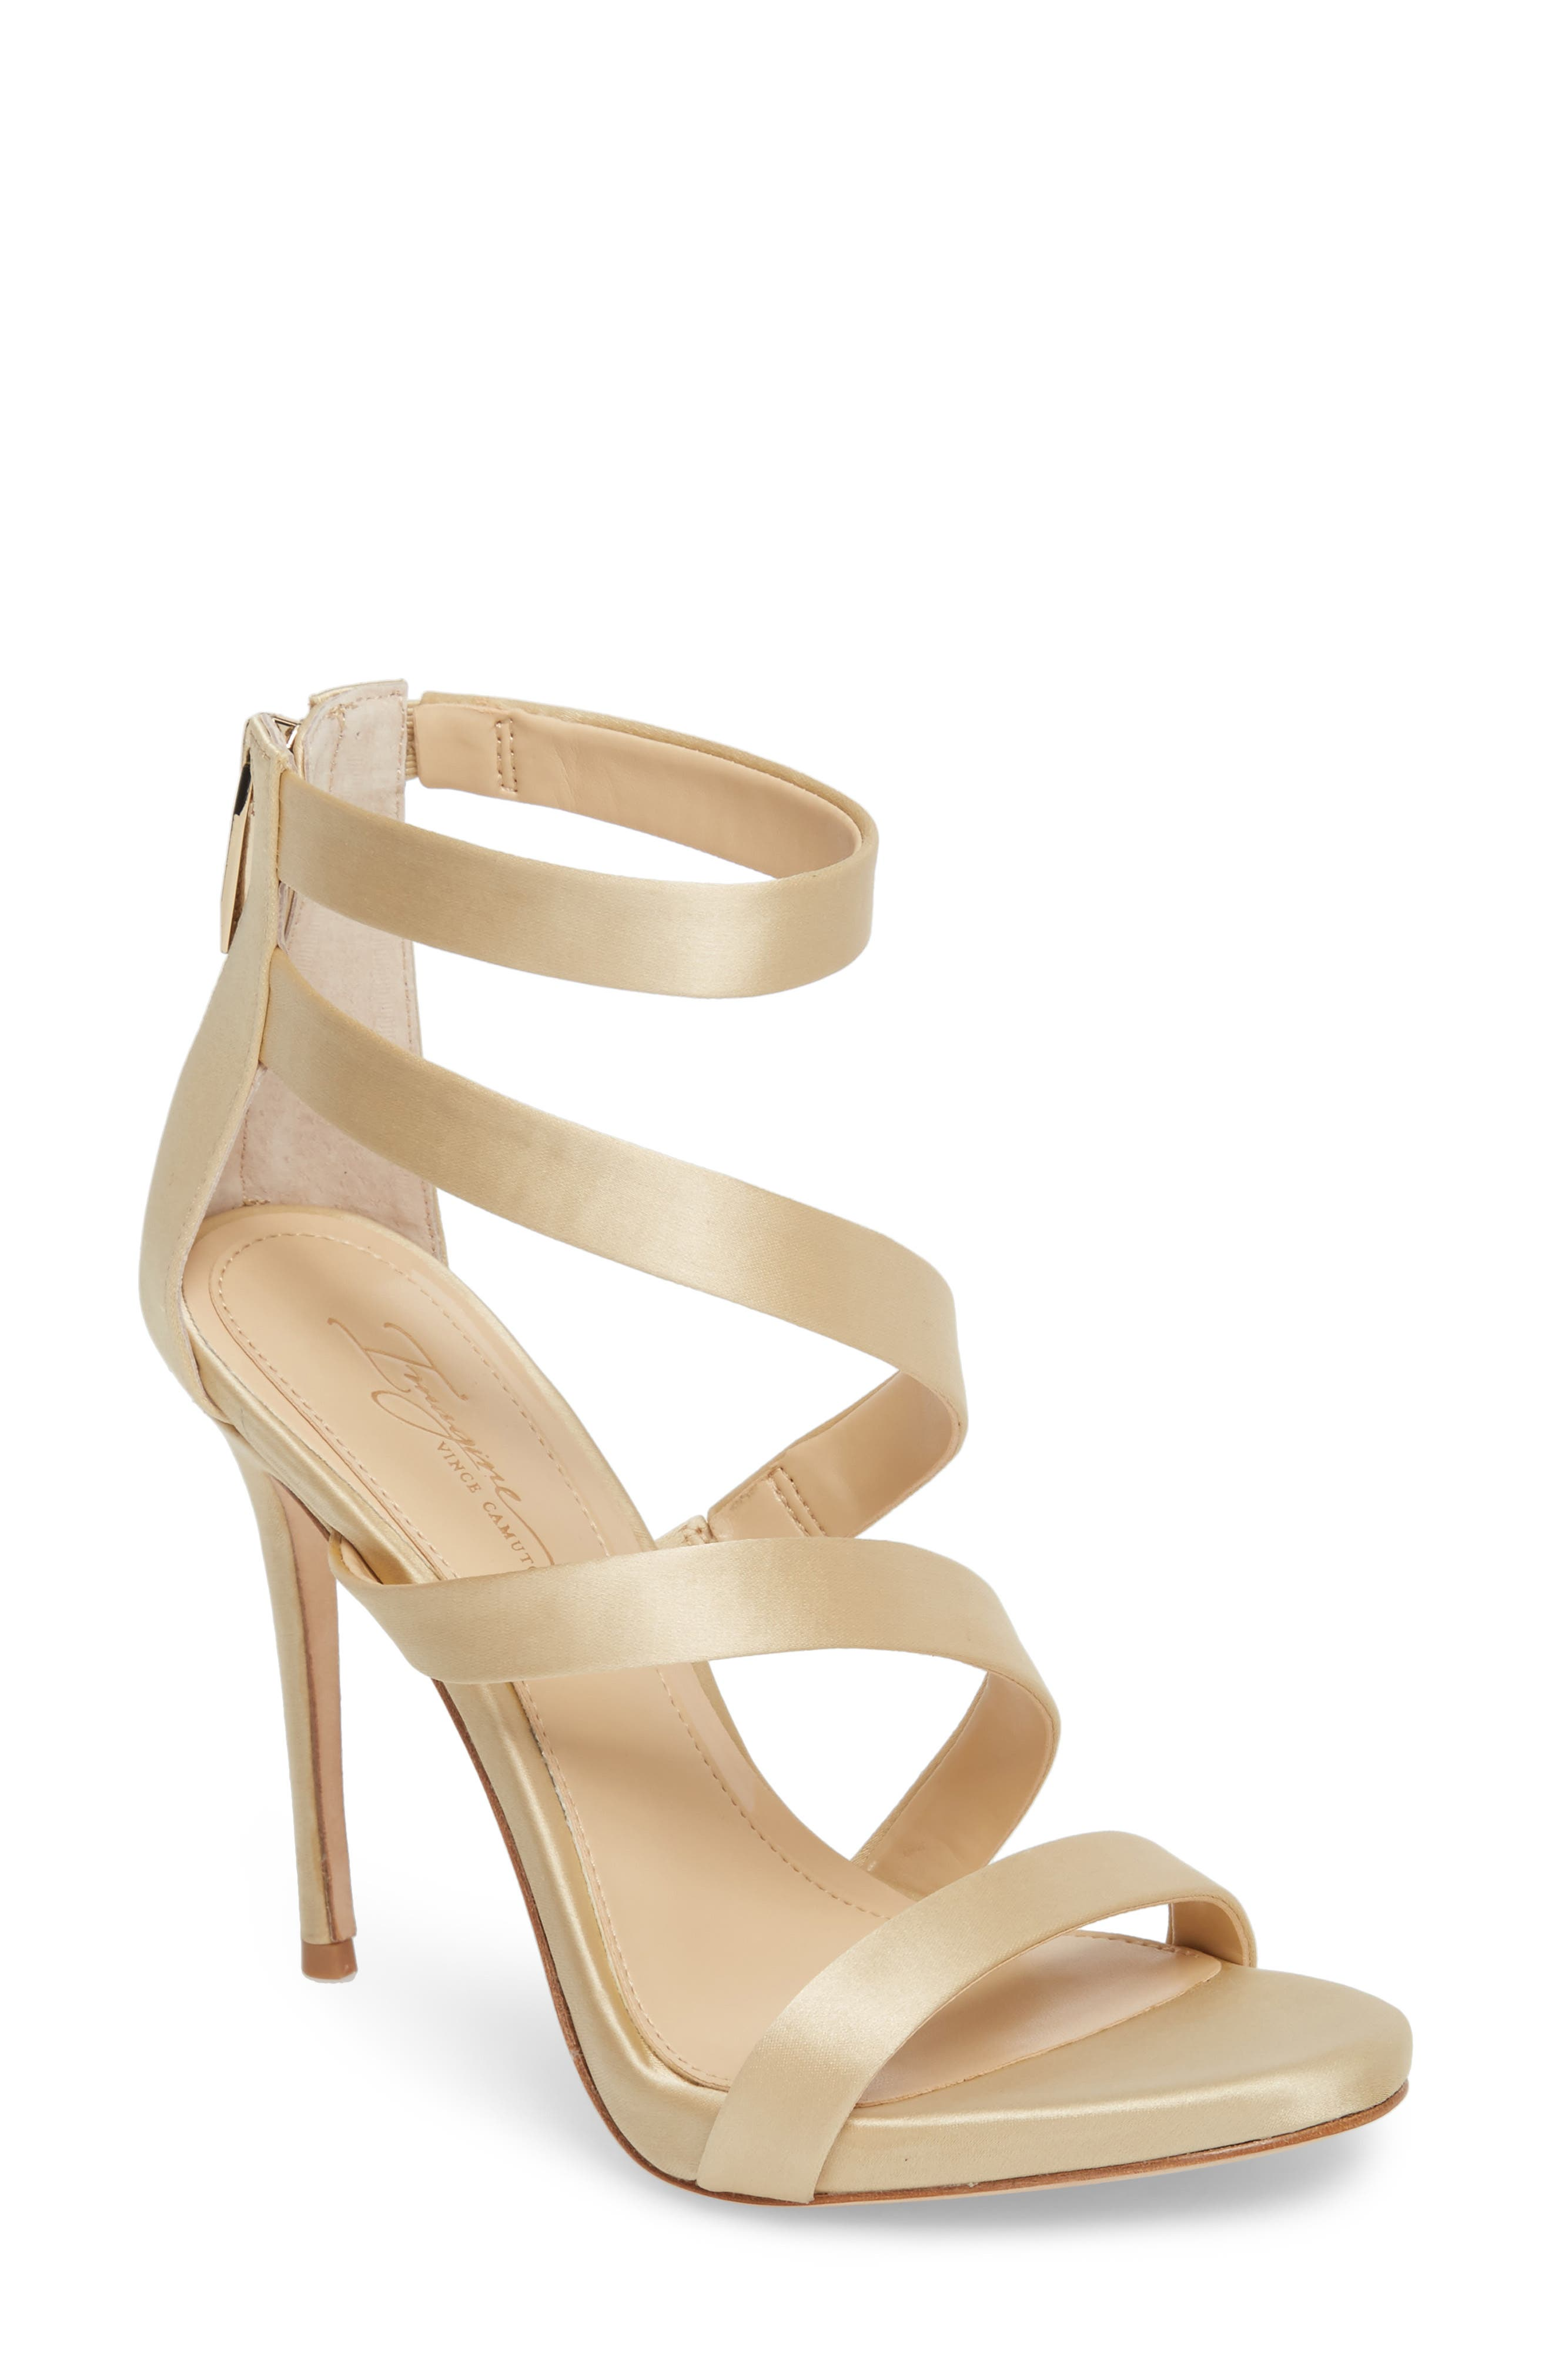 Alternate Image 1 Selected - Imagine Vince Camuto Dalles Tall Strappy Sandal (Women)